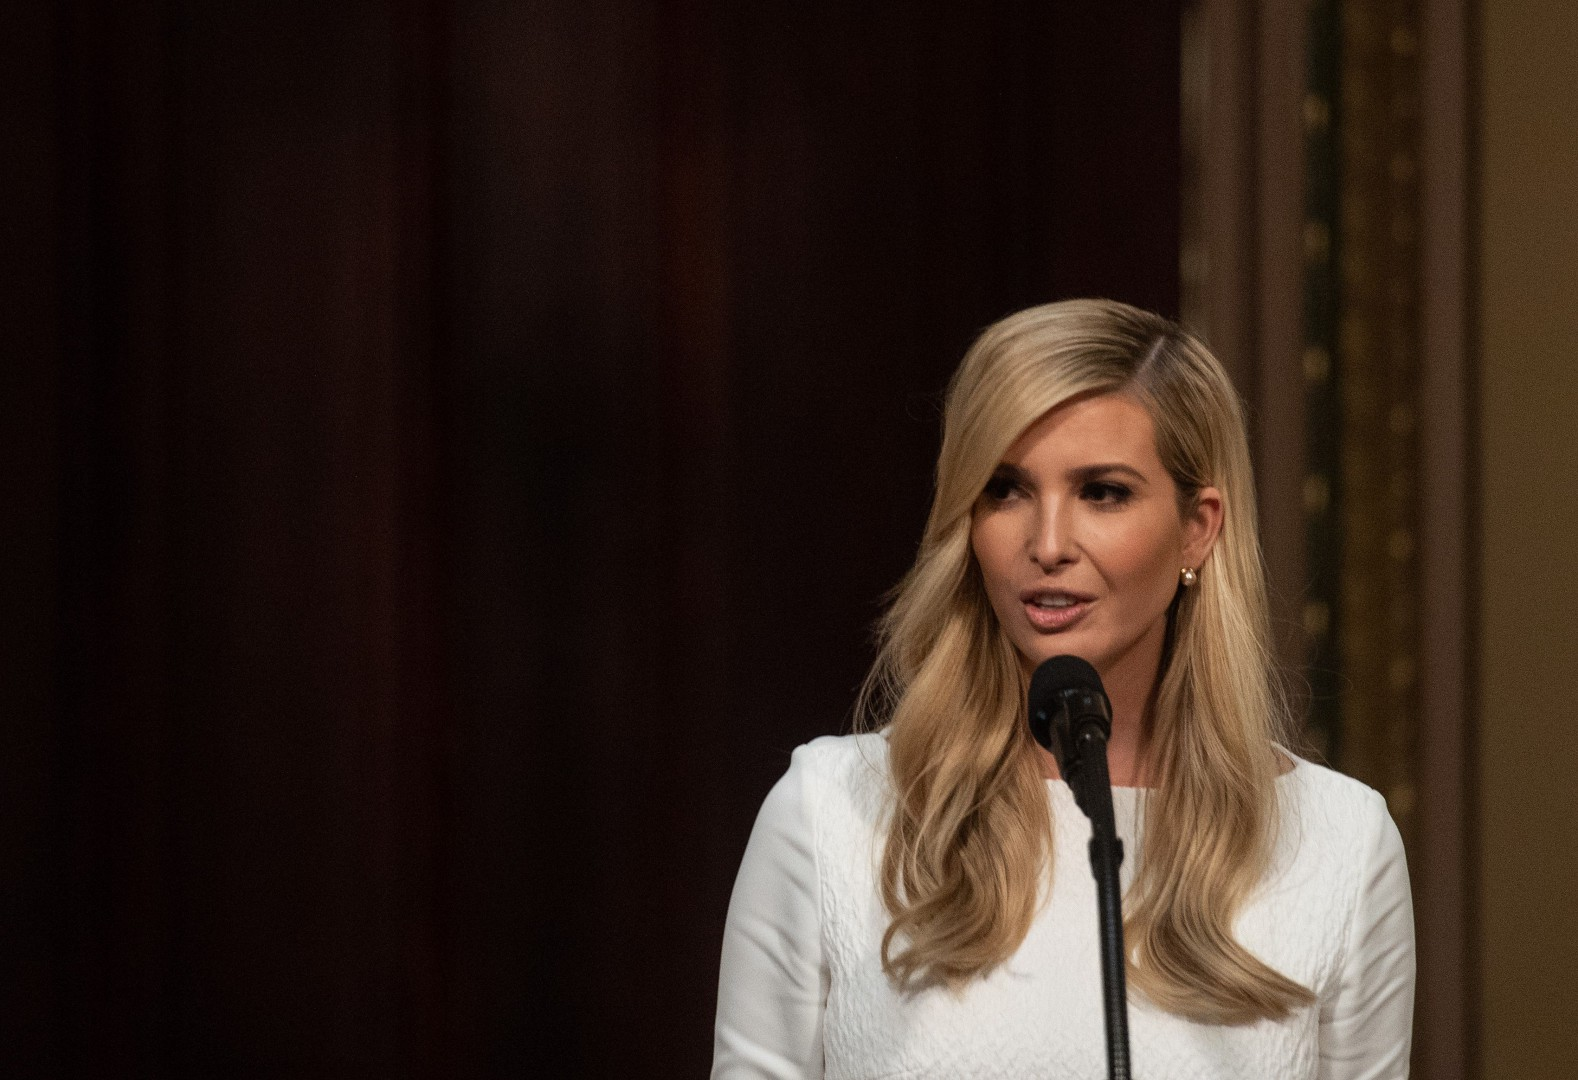 Ivanka Trump, adviser and daughter of US President Donald Trump, addresses the Interagency Task Force to Monitor and Combat Trafficking in Persons annual meeting at the White House in Washington, DC, on October 11, 2018. (Photo by NICHOLAS KAMM / AFP)